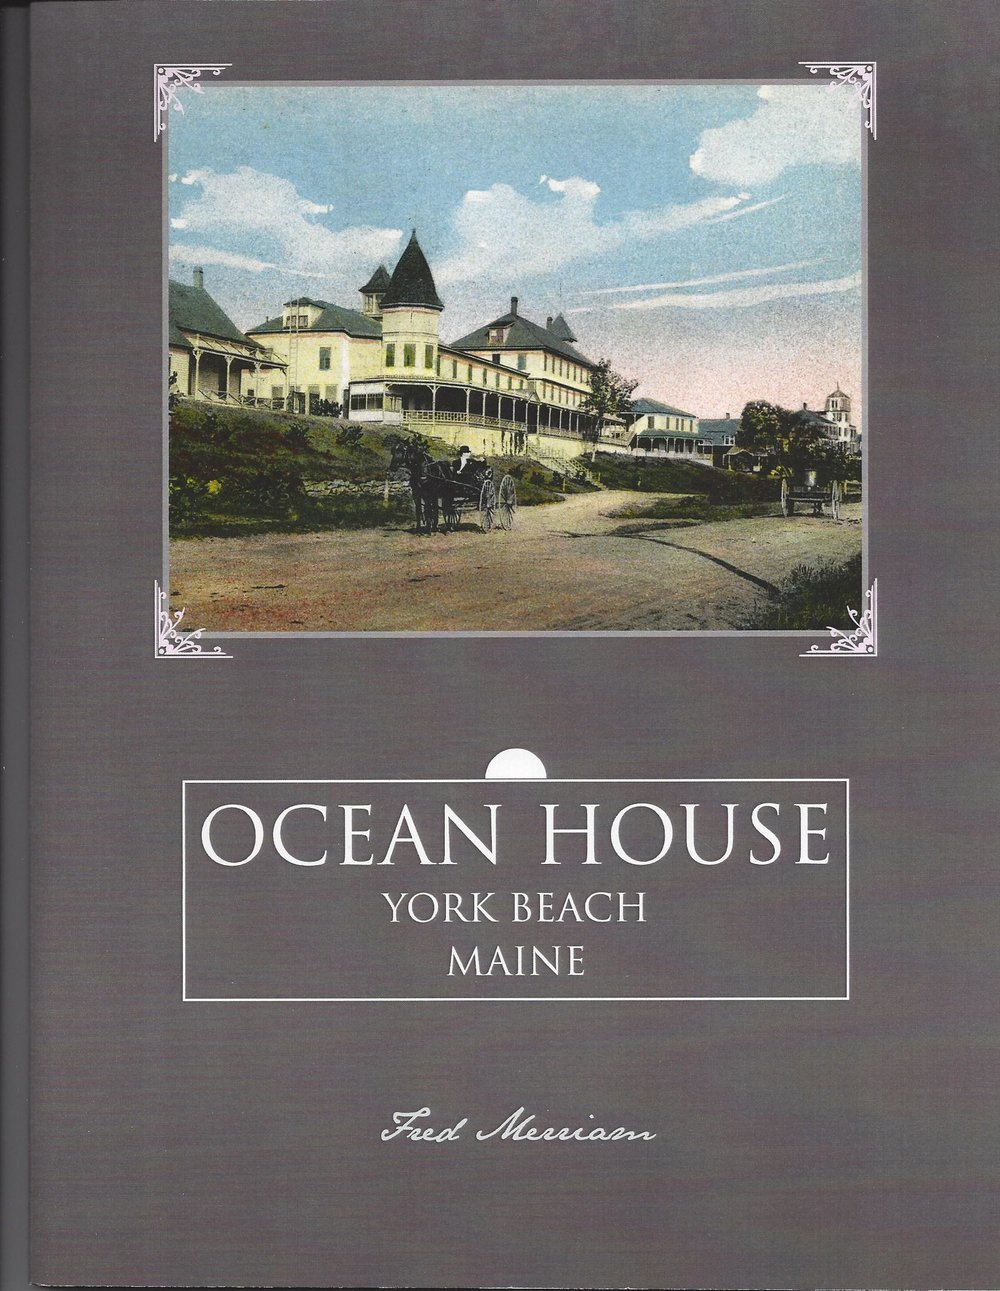 Ocean House York Beach Maine (Book), Merriam $18